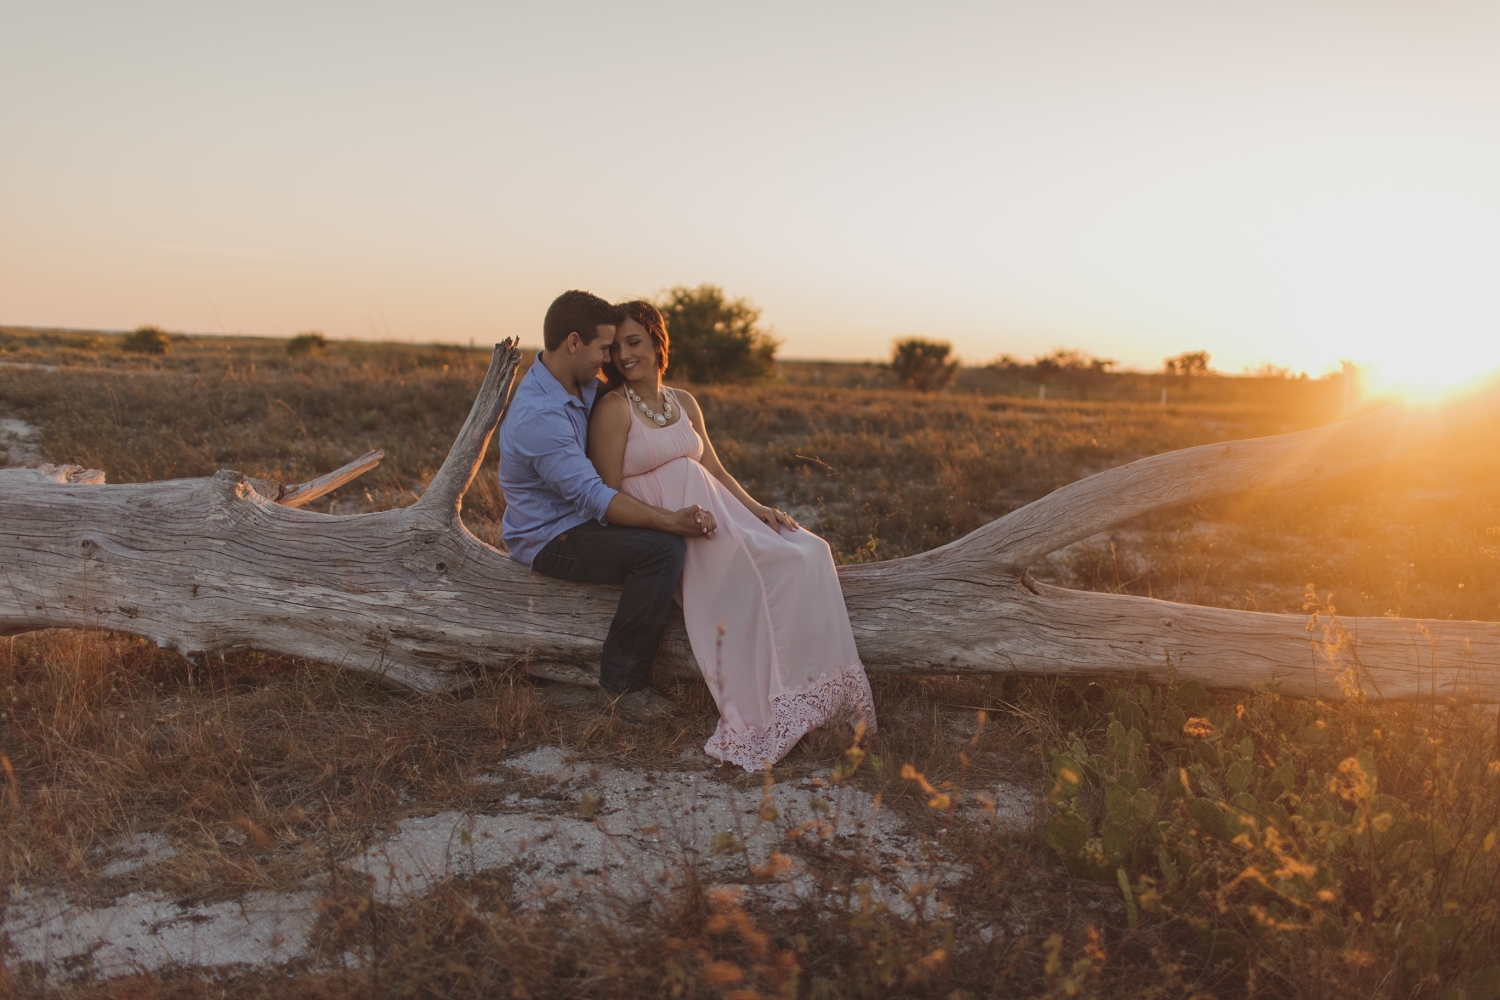 Florida Maternity Family Photographer Boho Stacy Paul Photography_0007.jpg